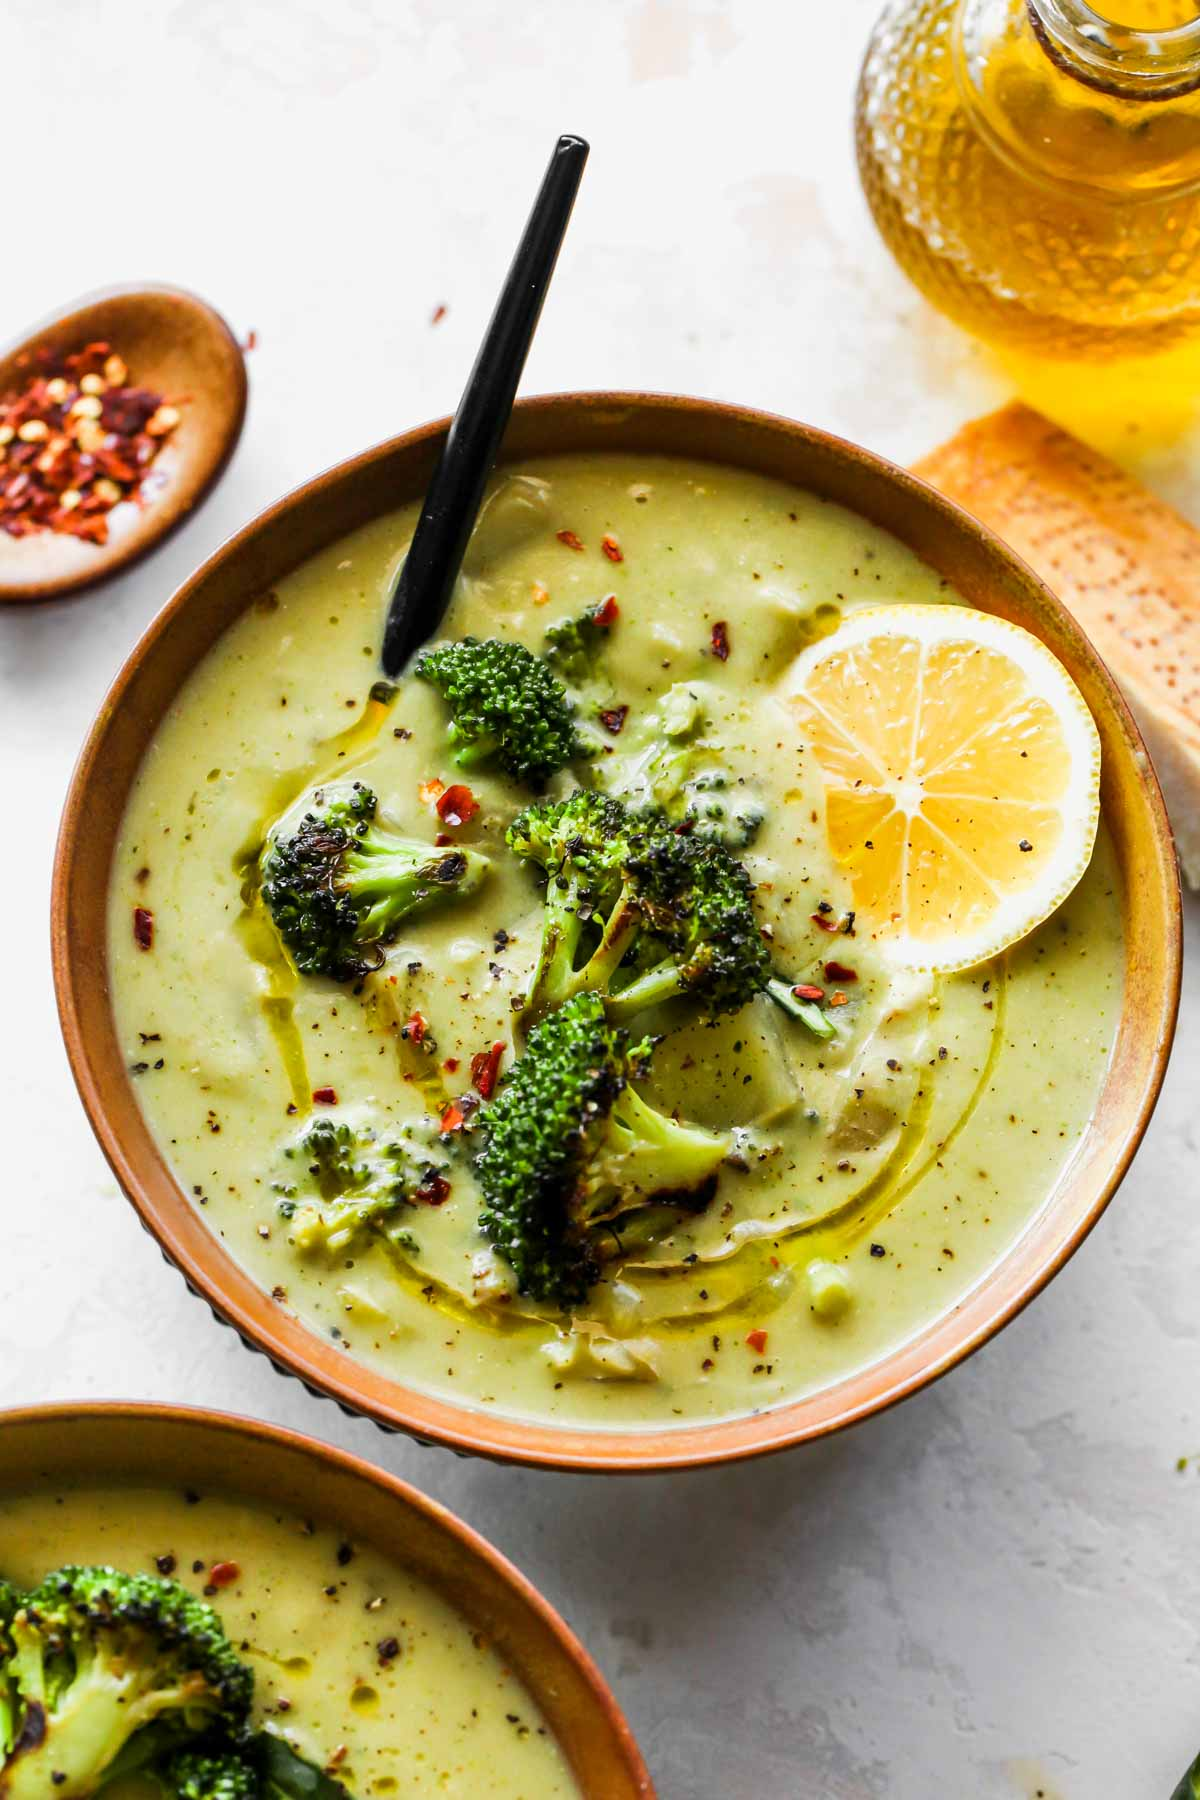 Two bowls of creamy broccoli soup topped with broccoli florets and chili flakes